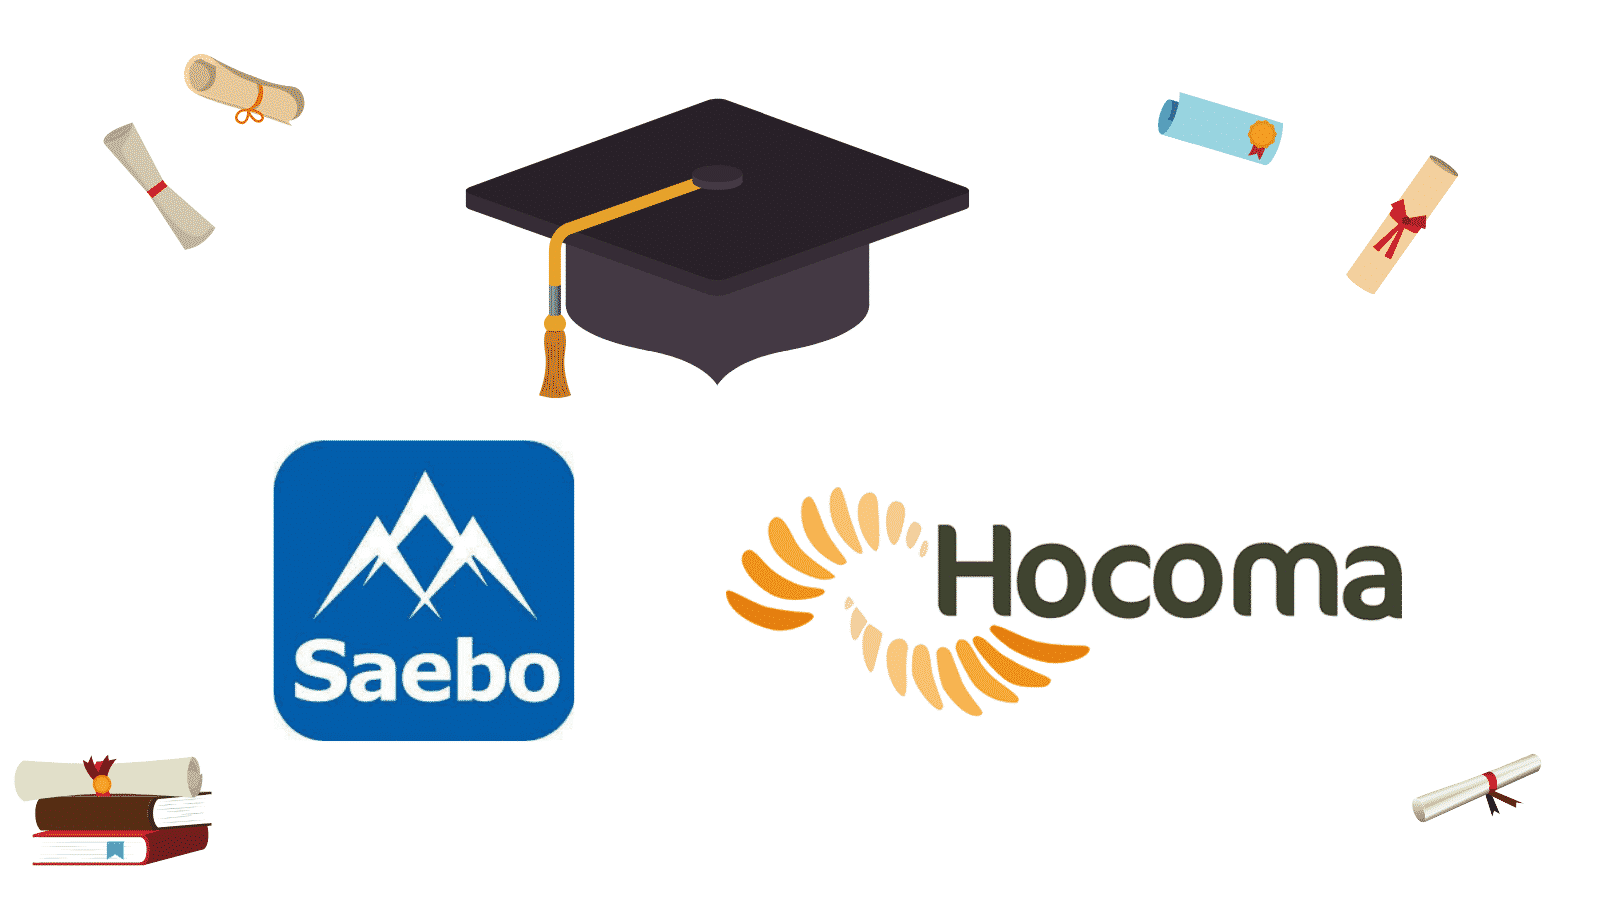 Saebo Live Course Co-Sponsored with Hocoma Advanced Technologies for the Upper Extremity